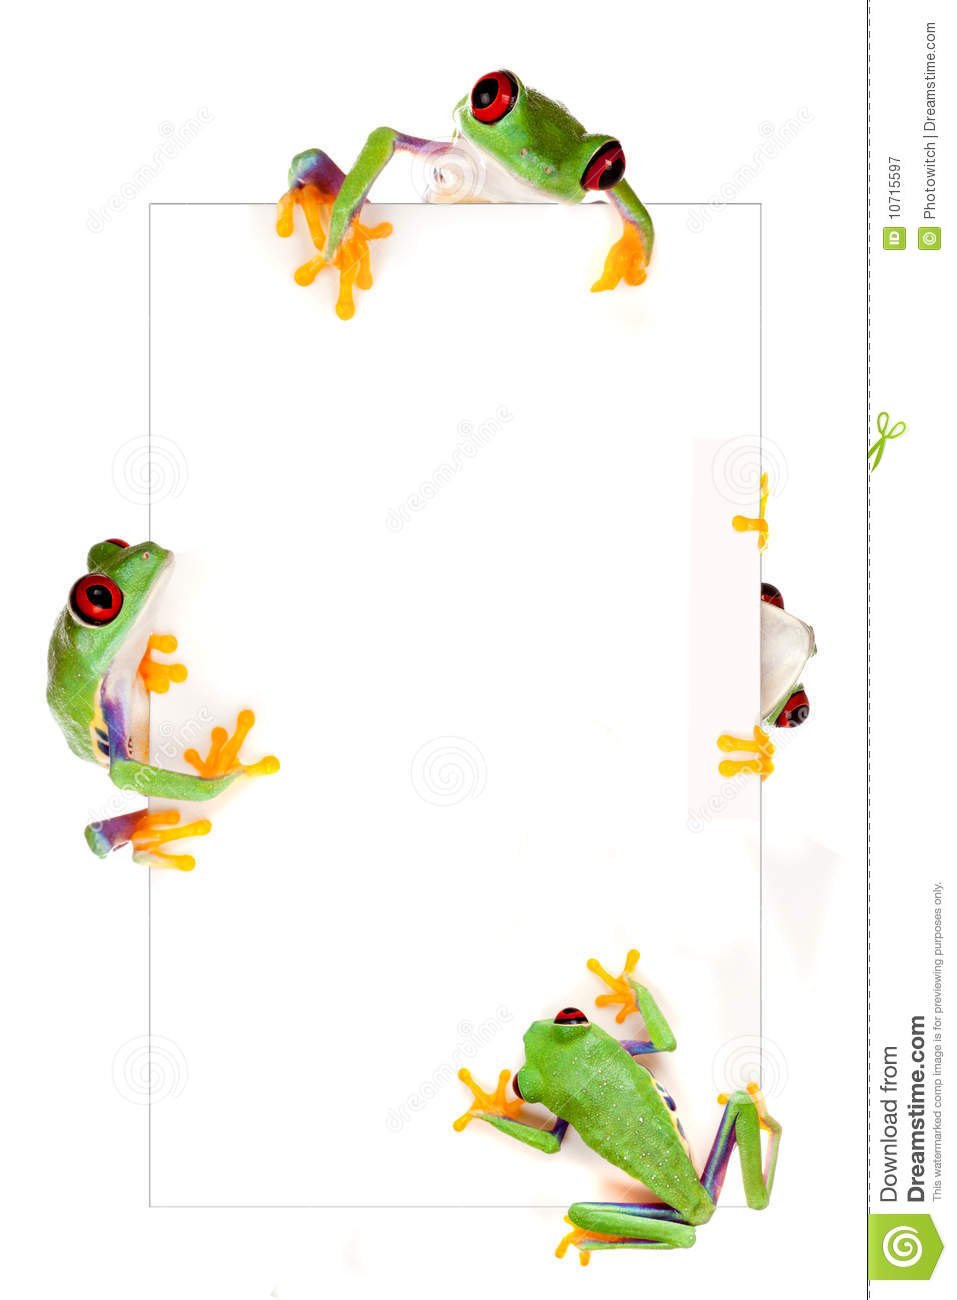 Young red eyed tree frog isolated on a white page as a border frame.